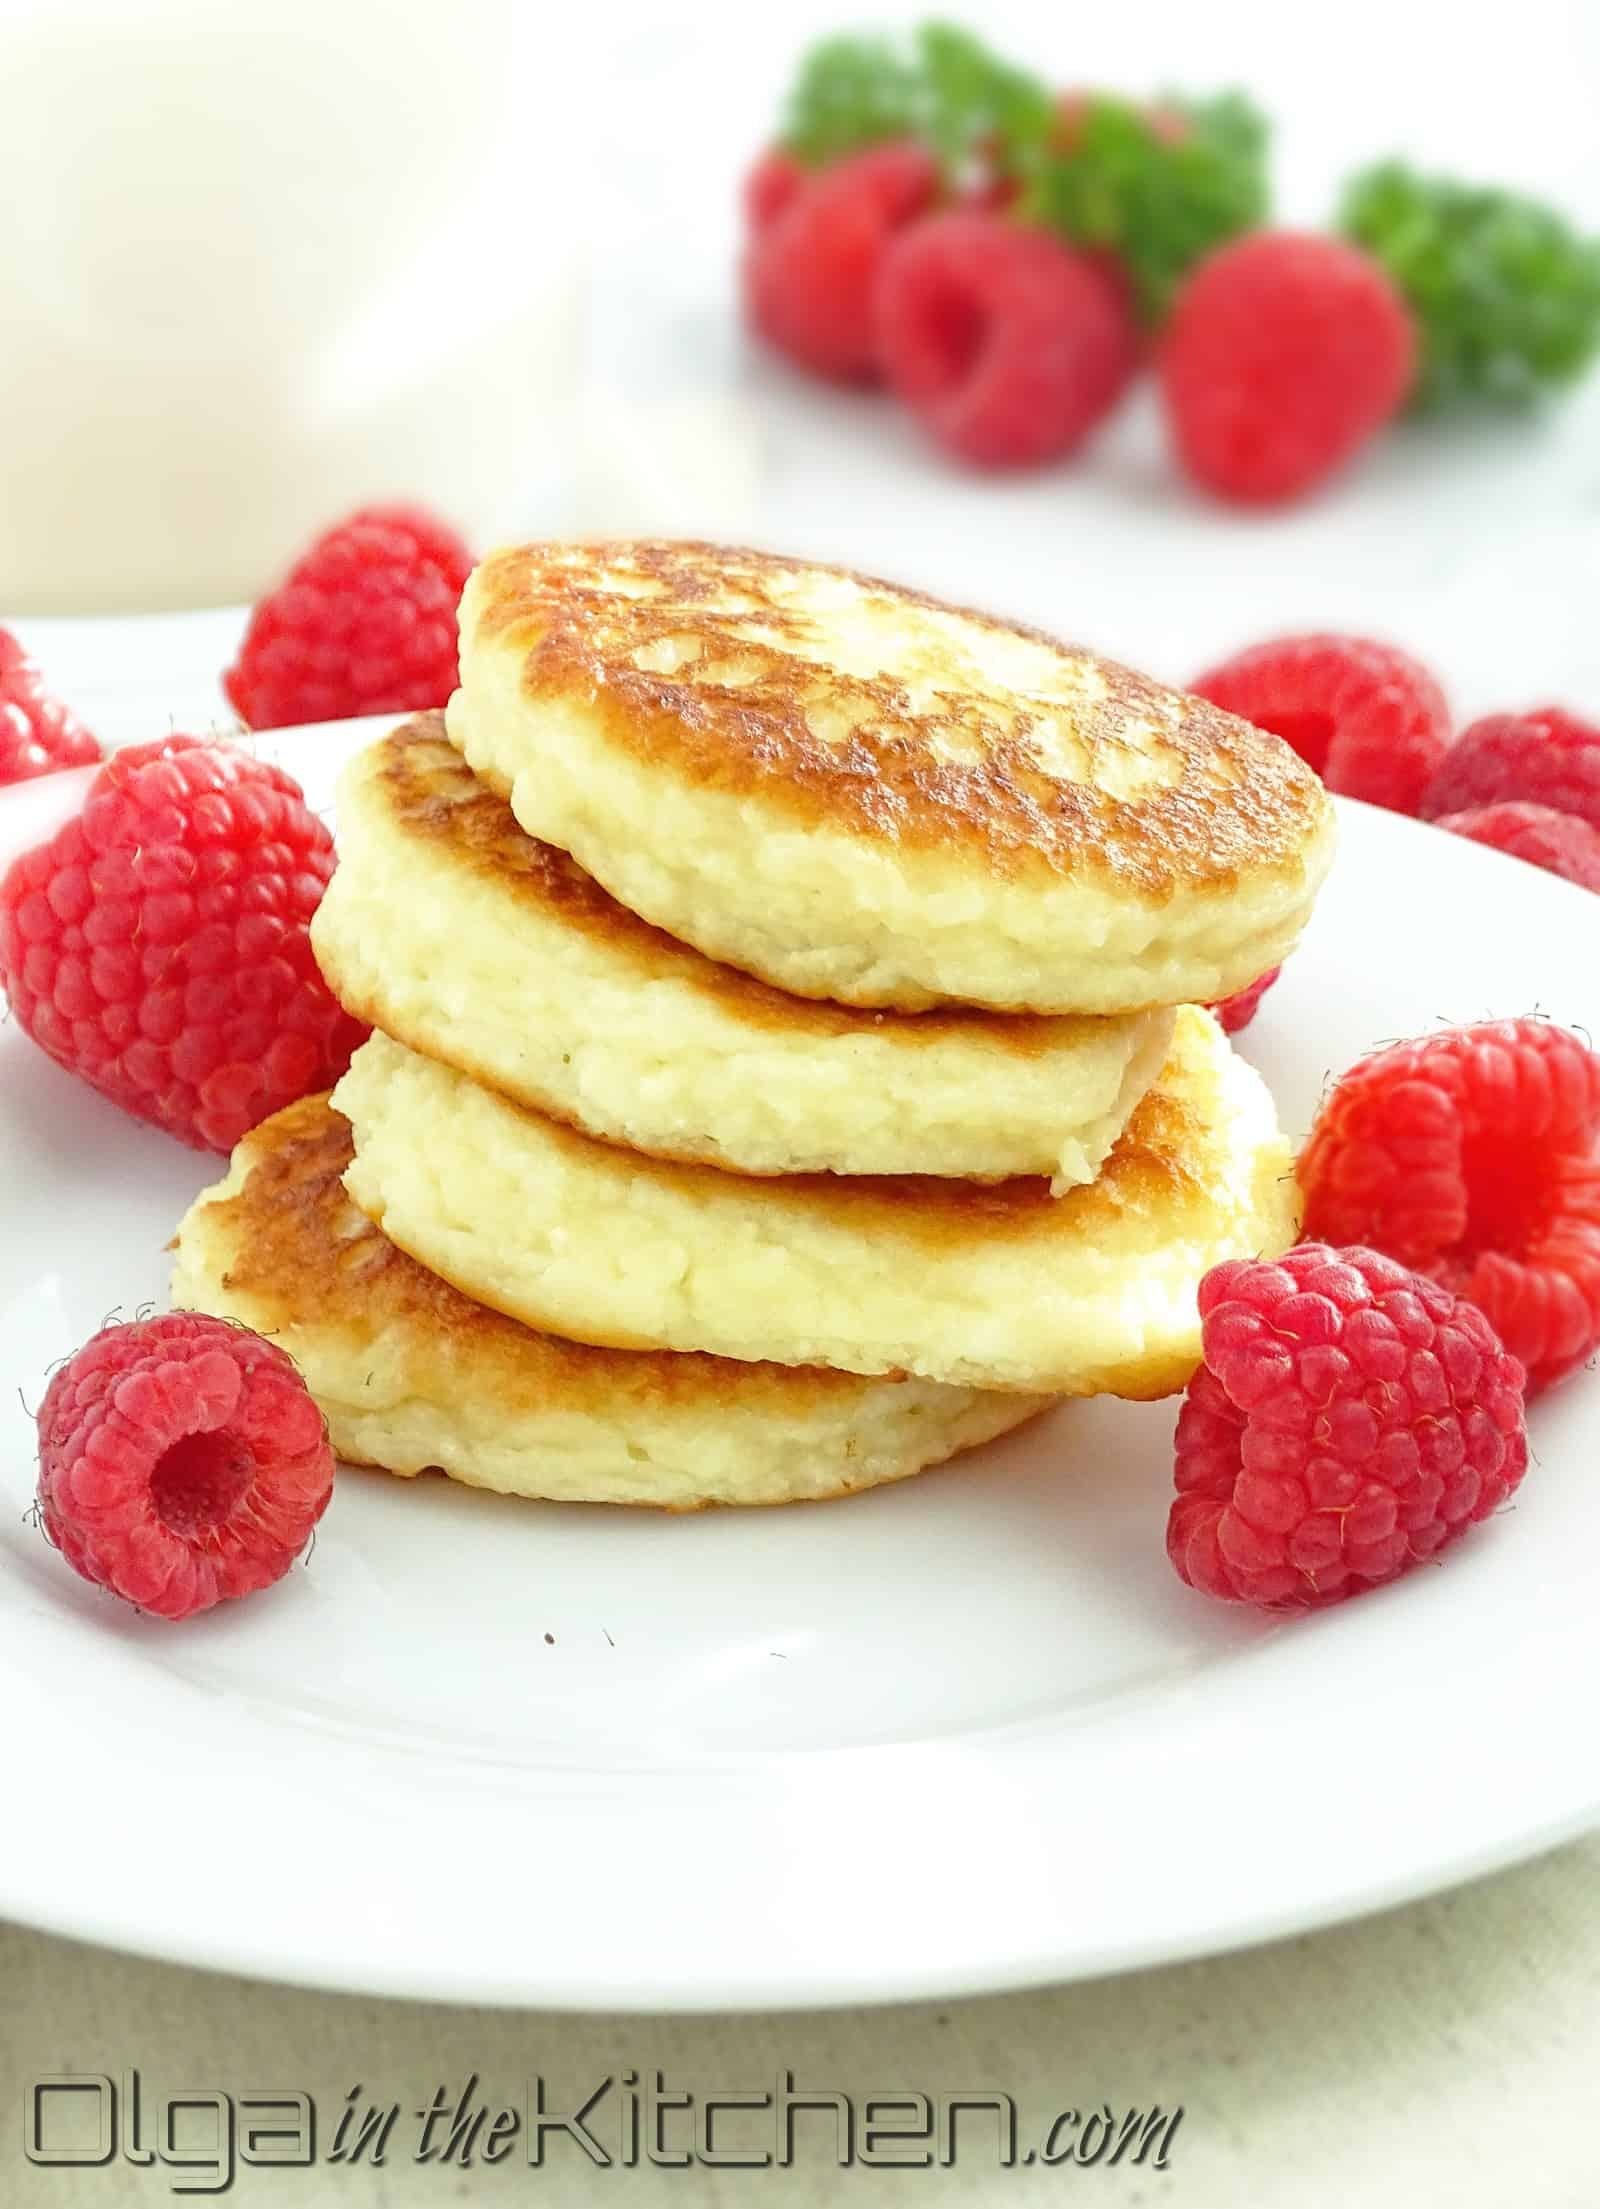 Cheese Pancakes (sirniki): slightly sweet, fluffy, bite-size delicious goodness for breakfast. | olgainthekitchen.com